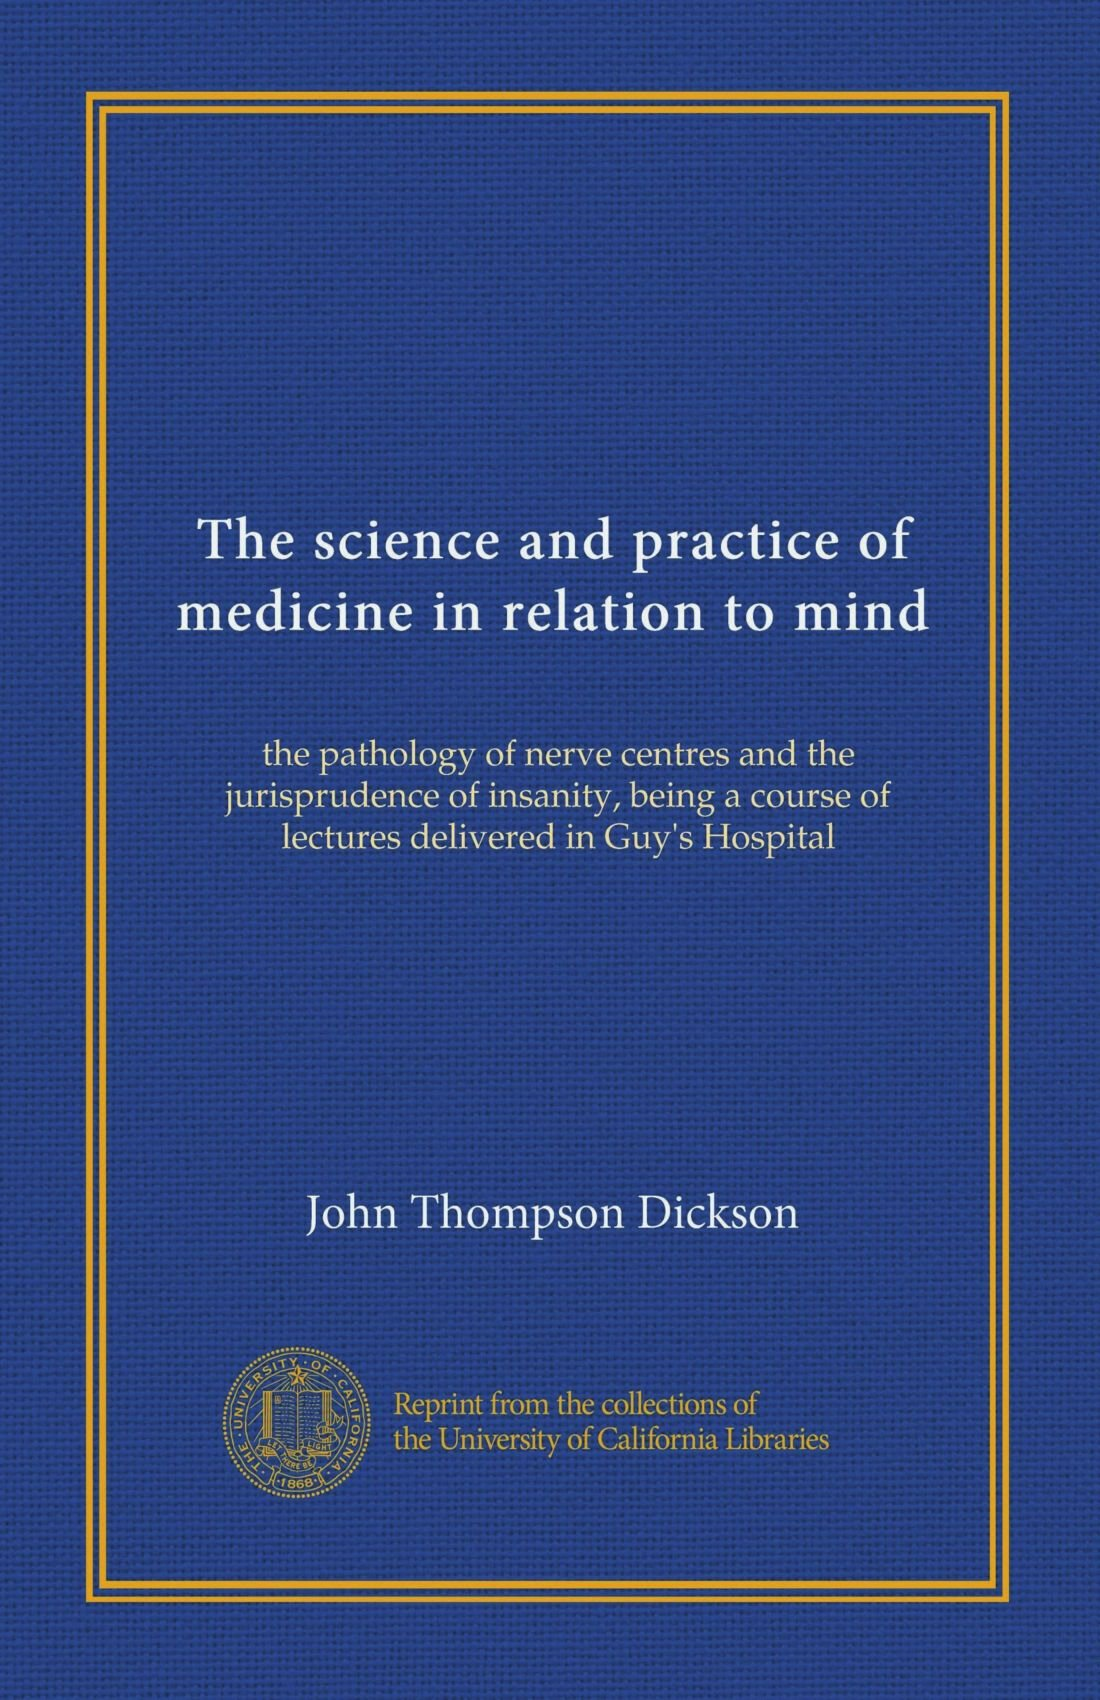 Read Online The science and practice of medicine in relation to mind: the pathology of nerve centres and the jurisprudence of insanity, being a course of lectures delivered in Guy's Hospital ebook